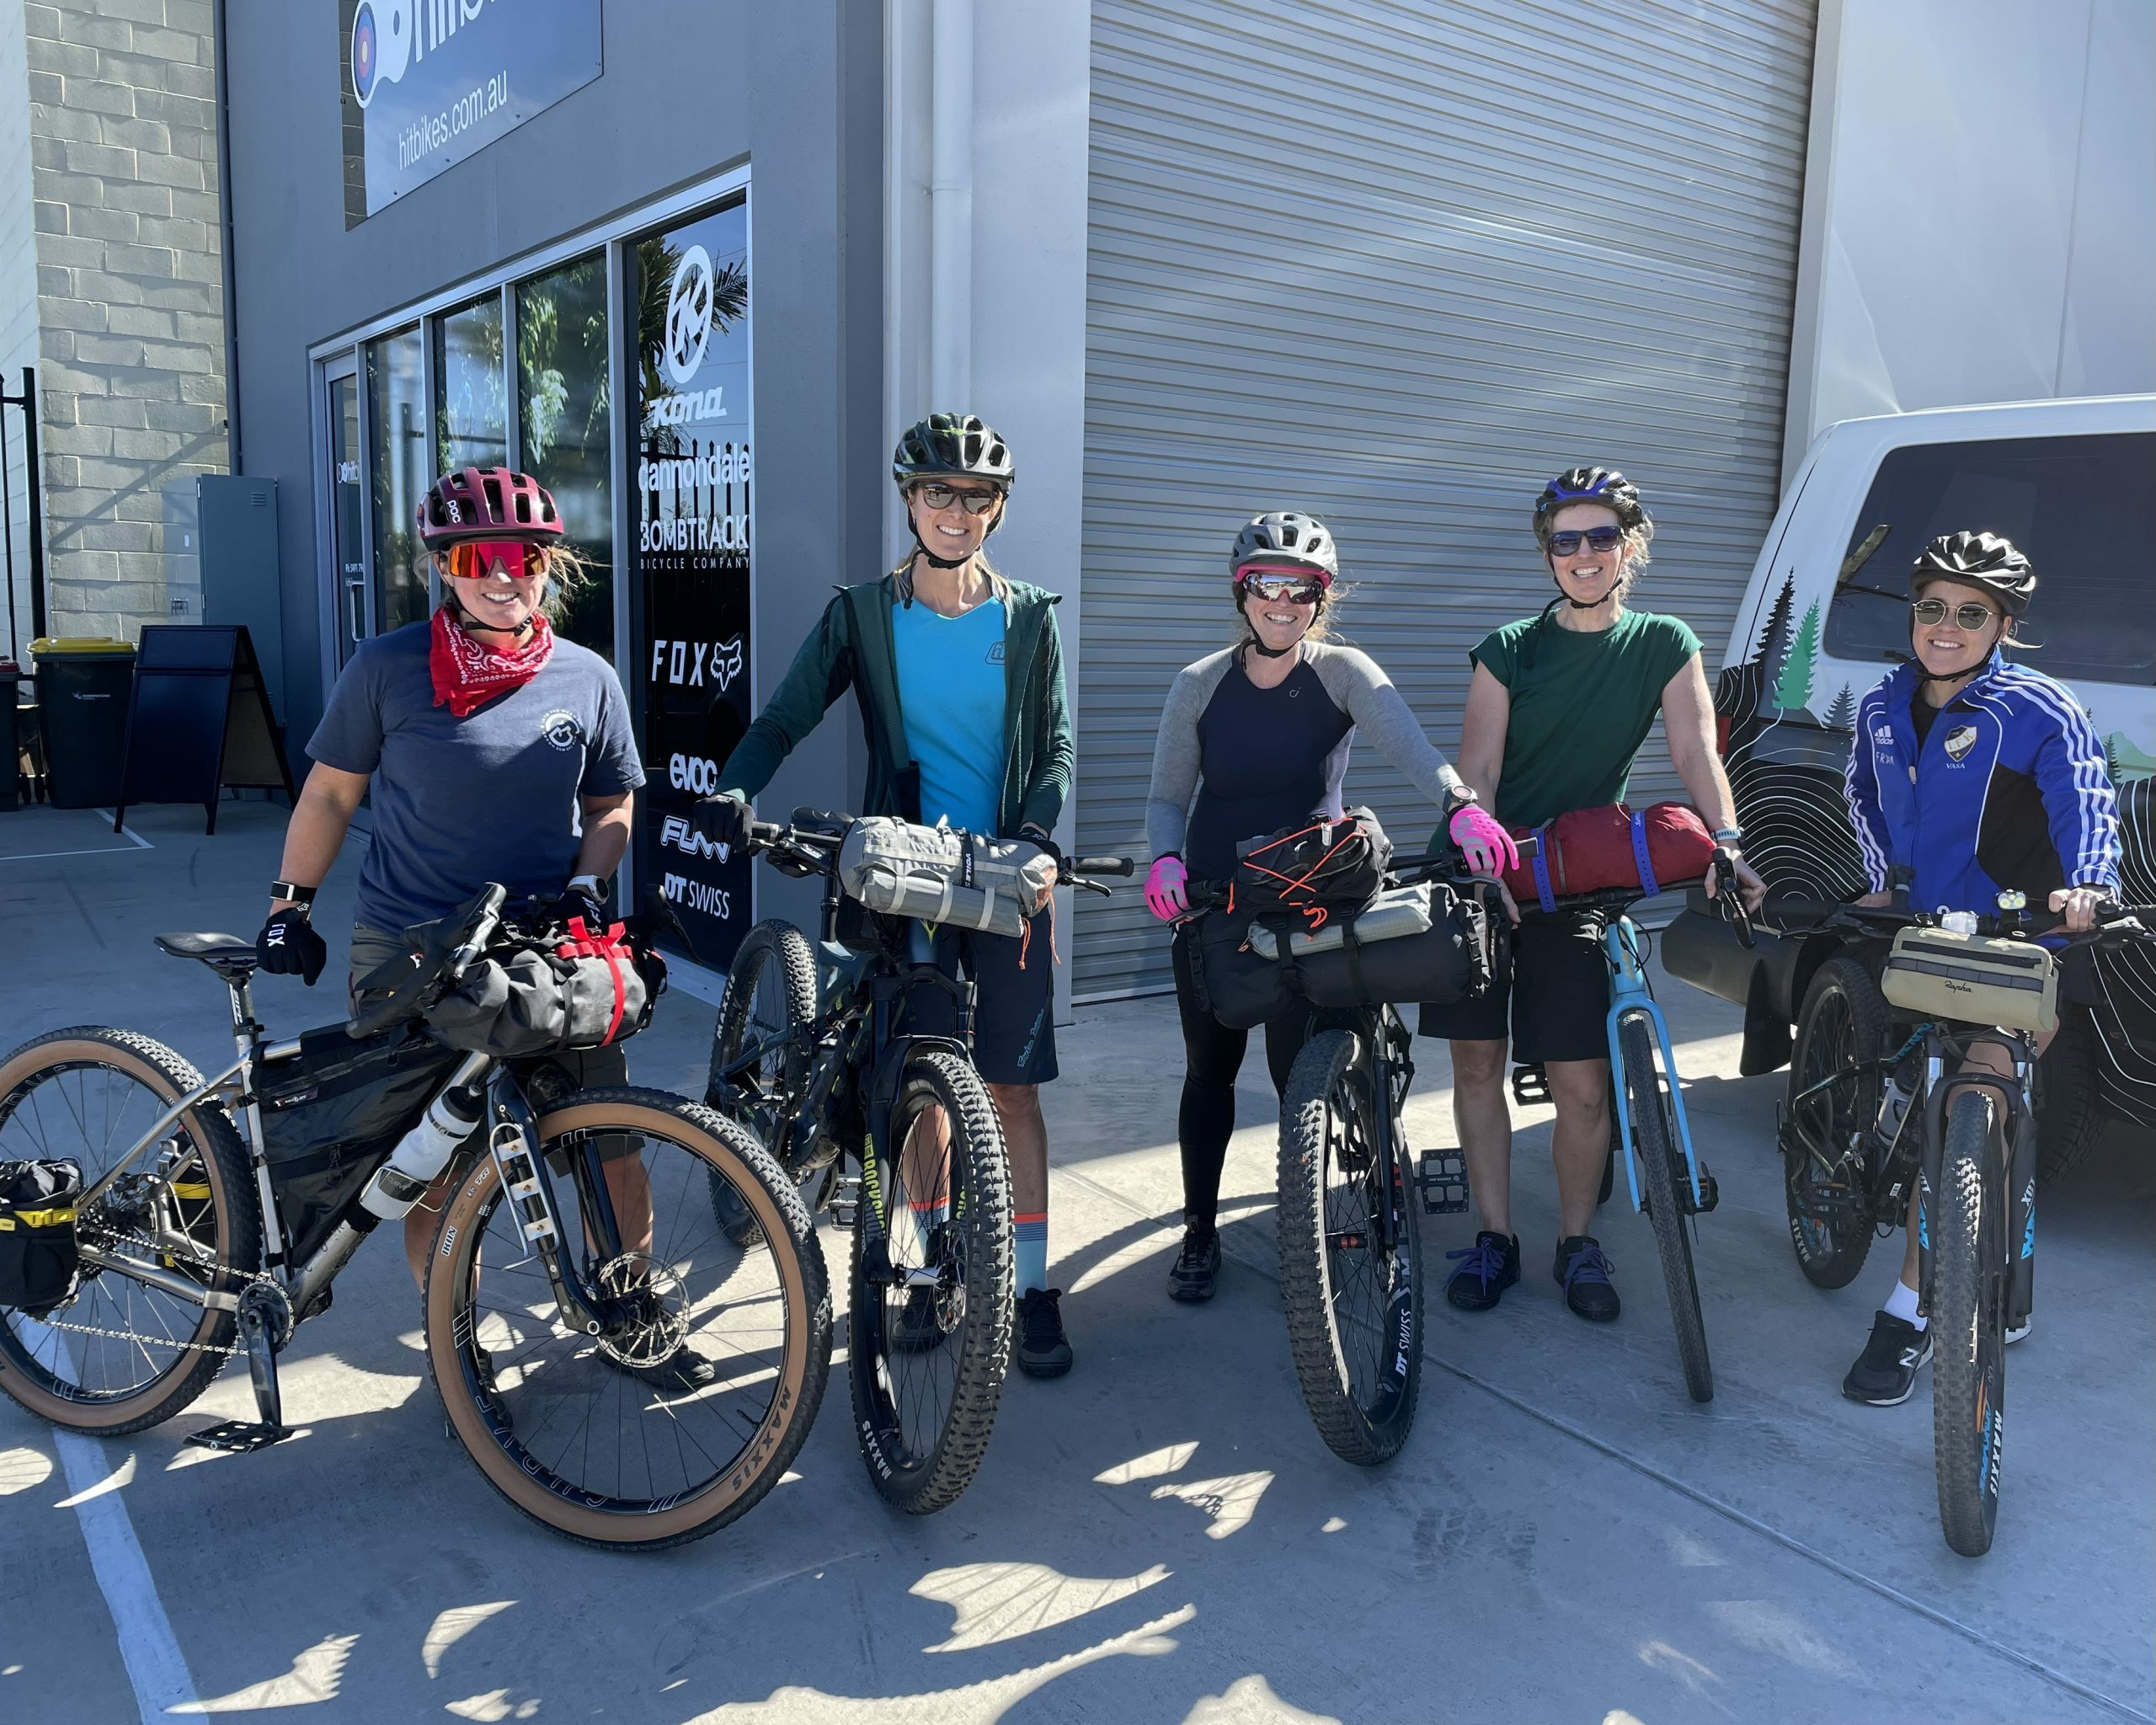 The group gathered for the Into to women's bikepacking workshop